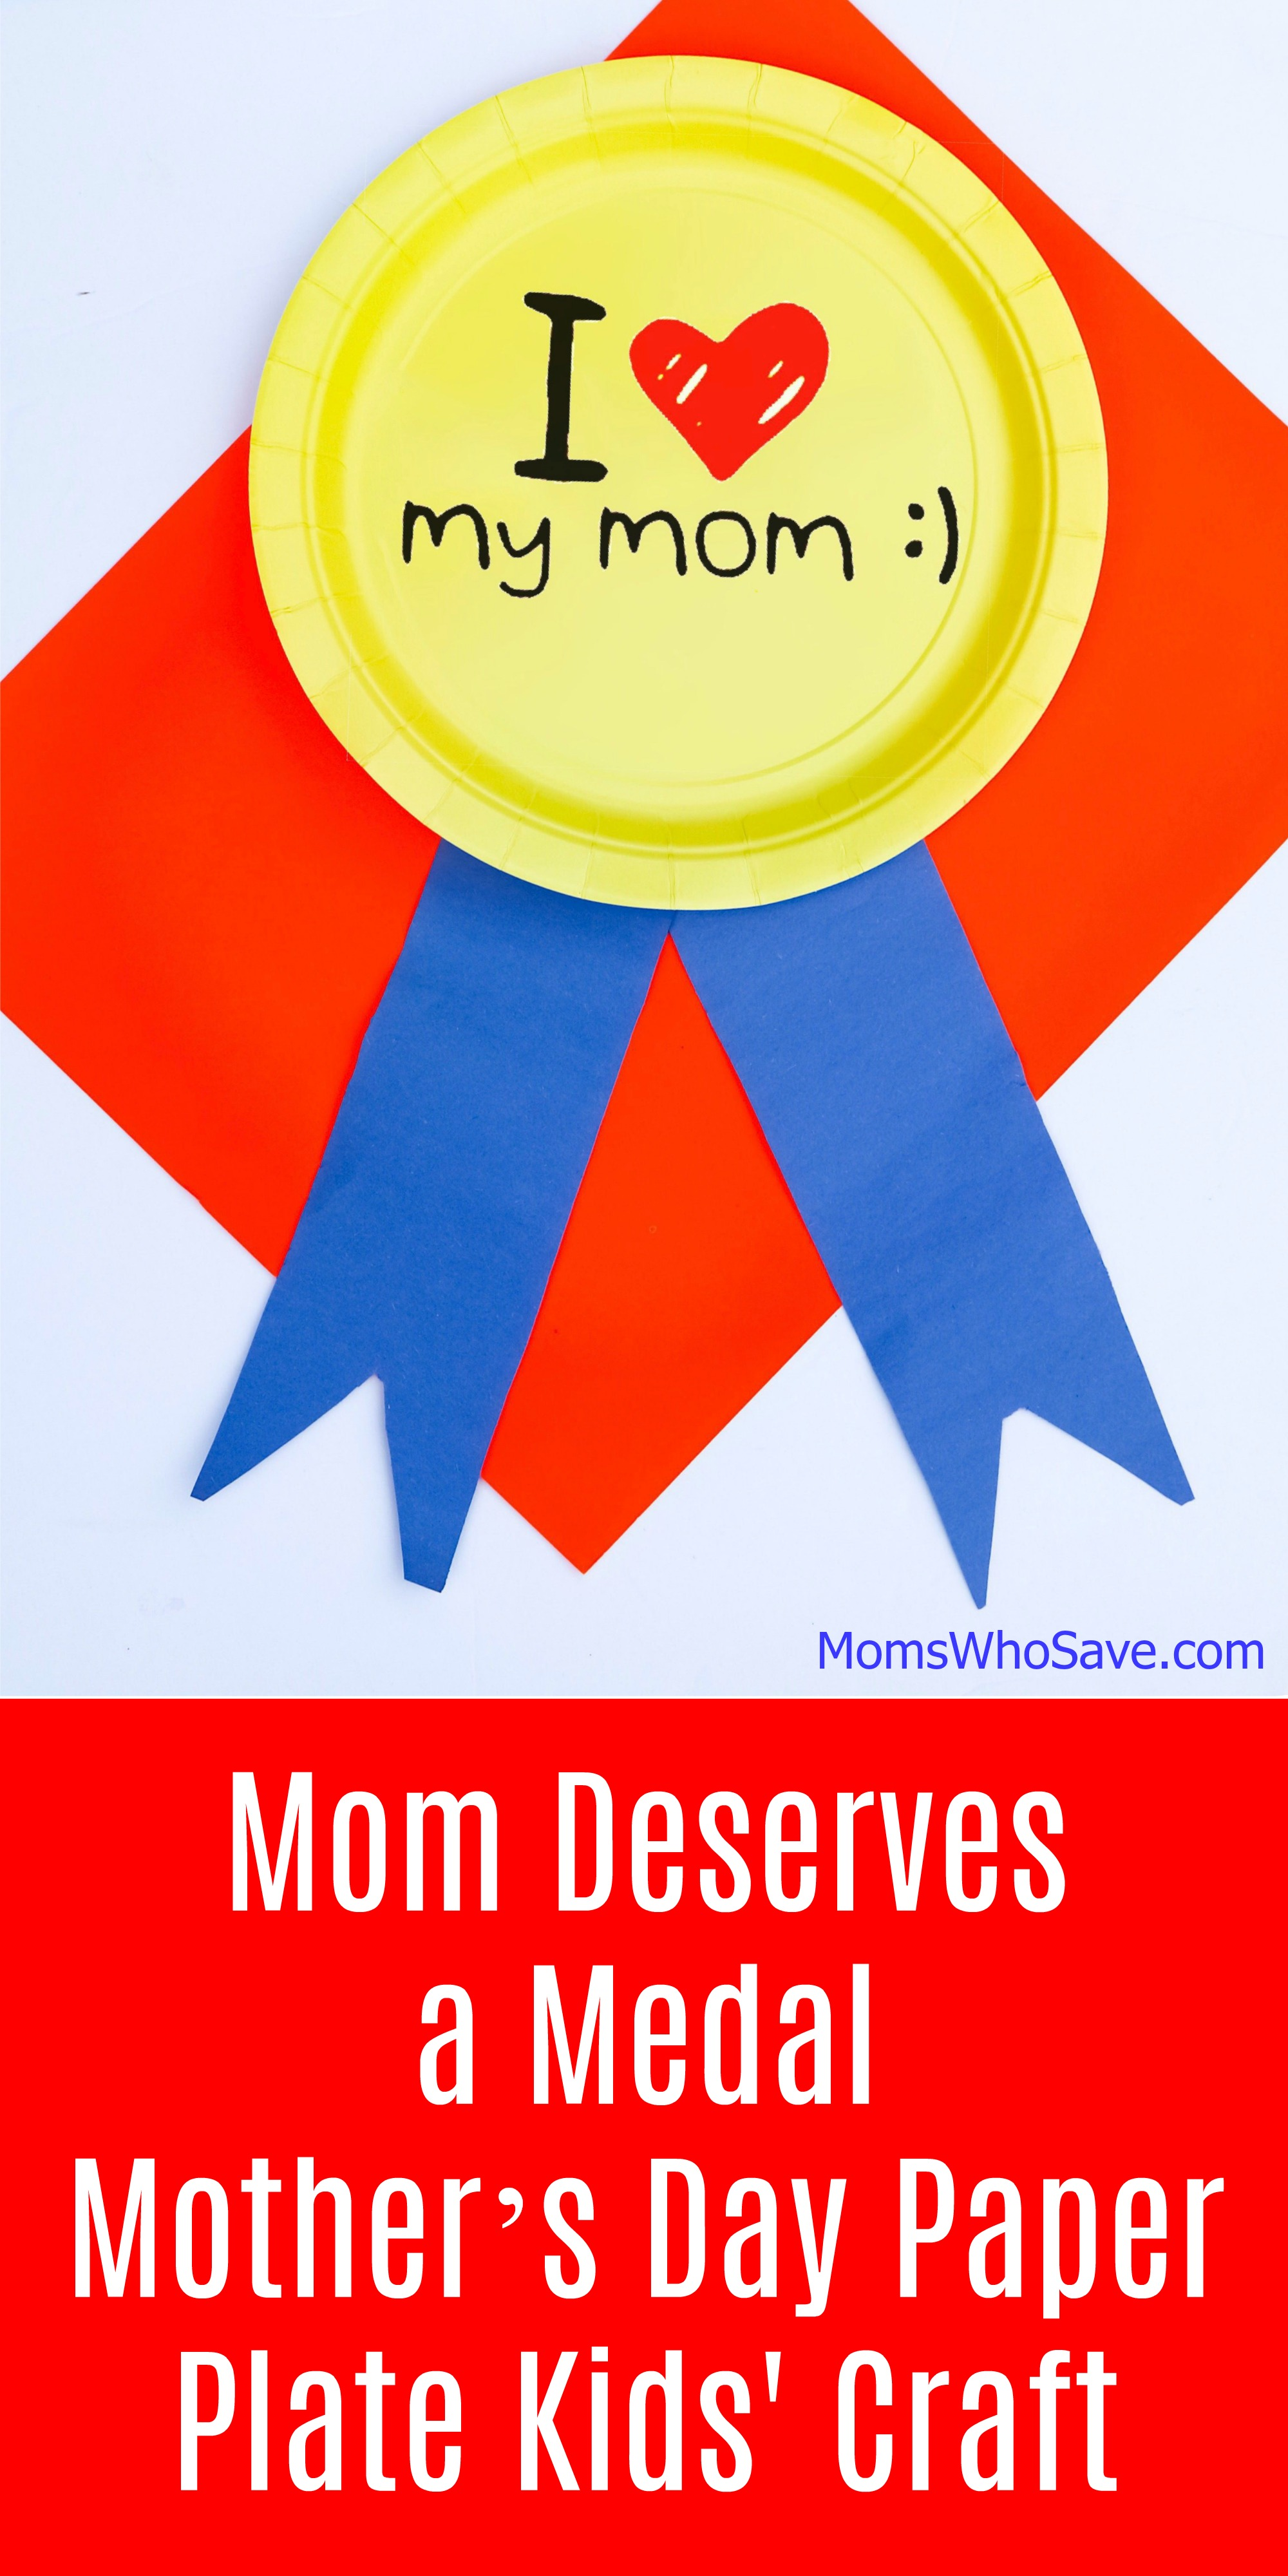 Mom Deserves A Medal Mother S Day Paper Plate Kids Craft